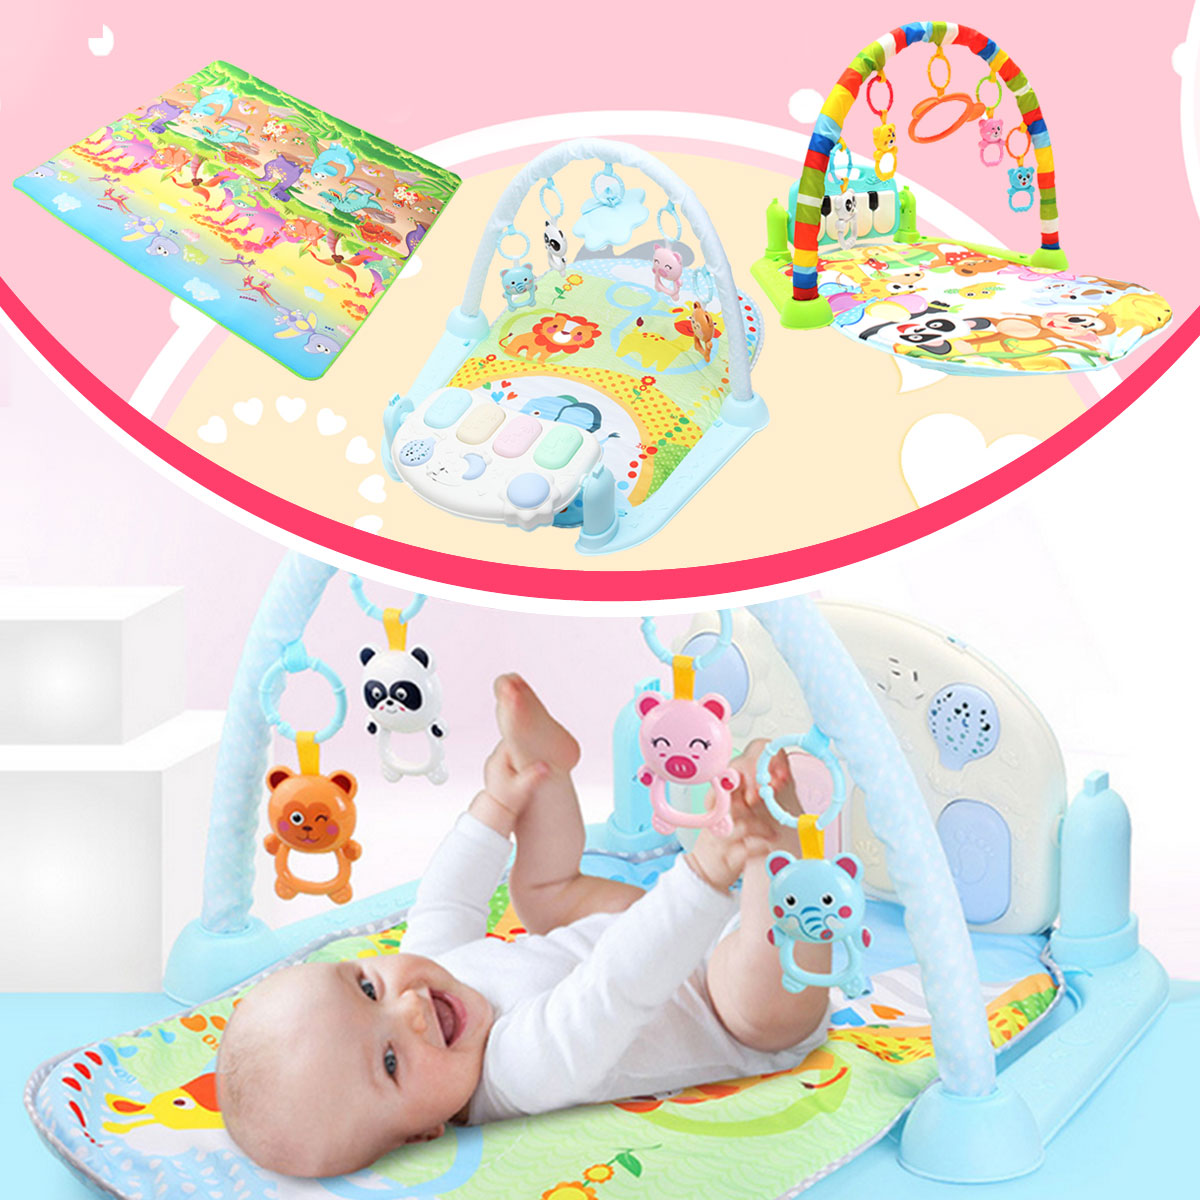 Kid Baby Play Mat Gym Hot Sell!!! 3 In 1 20 Melodies Musical Piano Activity Soft Fitness Four Kinds Of Play Night Light Baby Lullaby Kid Playmat Sleeping Cotton Mat Christmas Gift